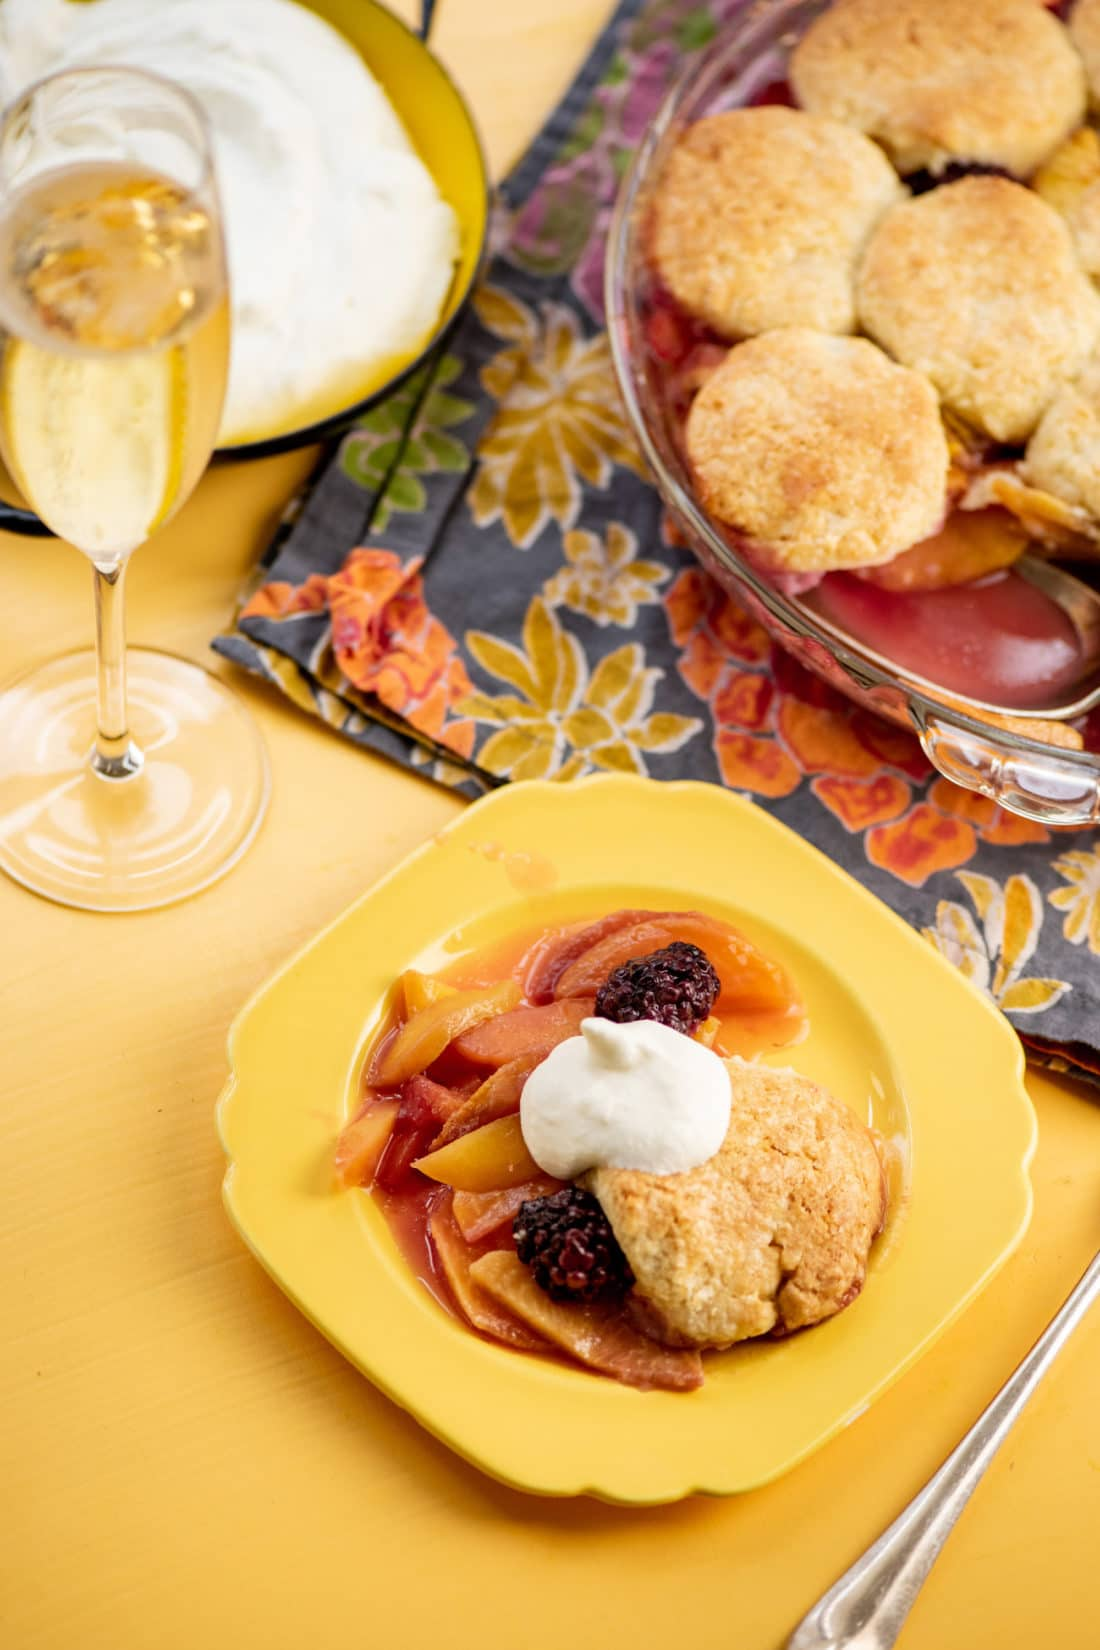 Sour Cream Biscuit Peach and Berry Cobbler / Photo by Cheyenne Cohen / Katie Workman / themom100.com